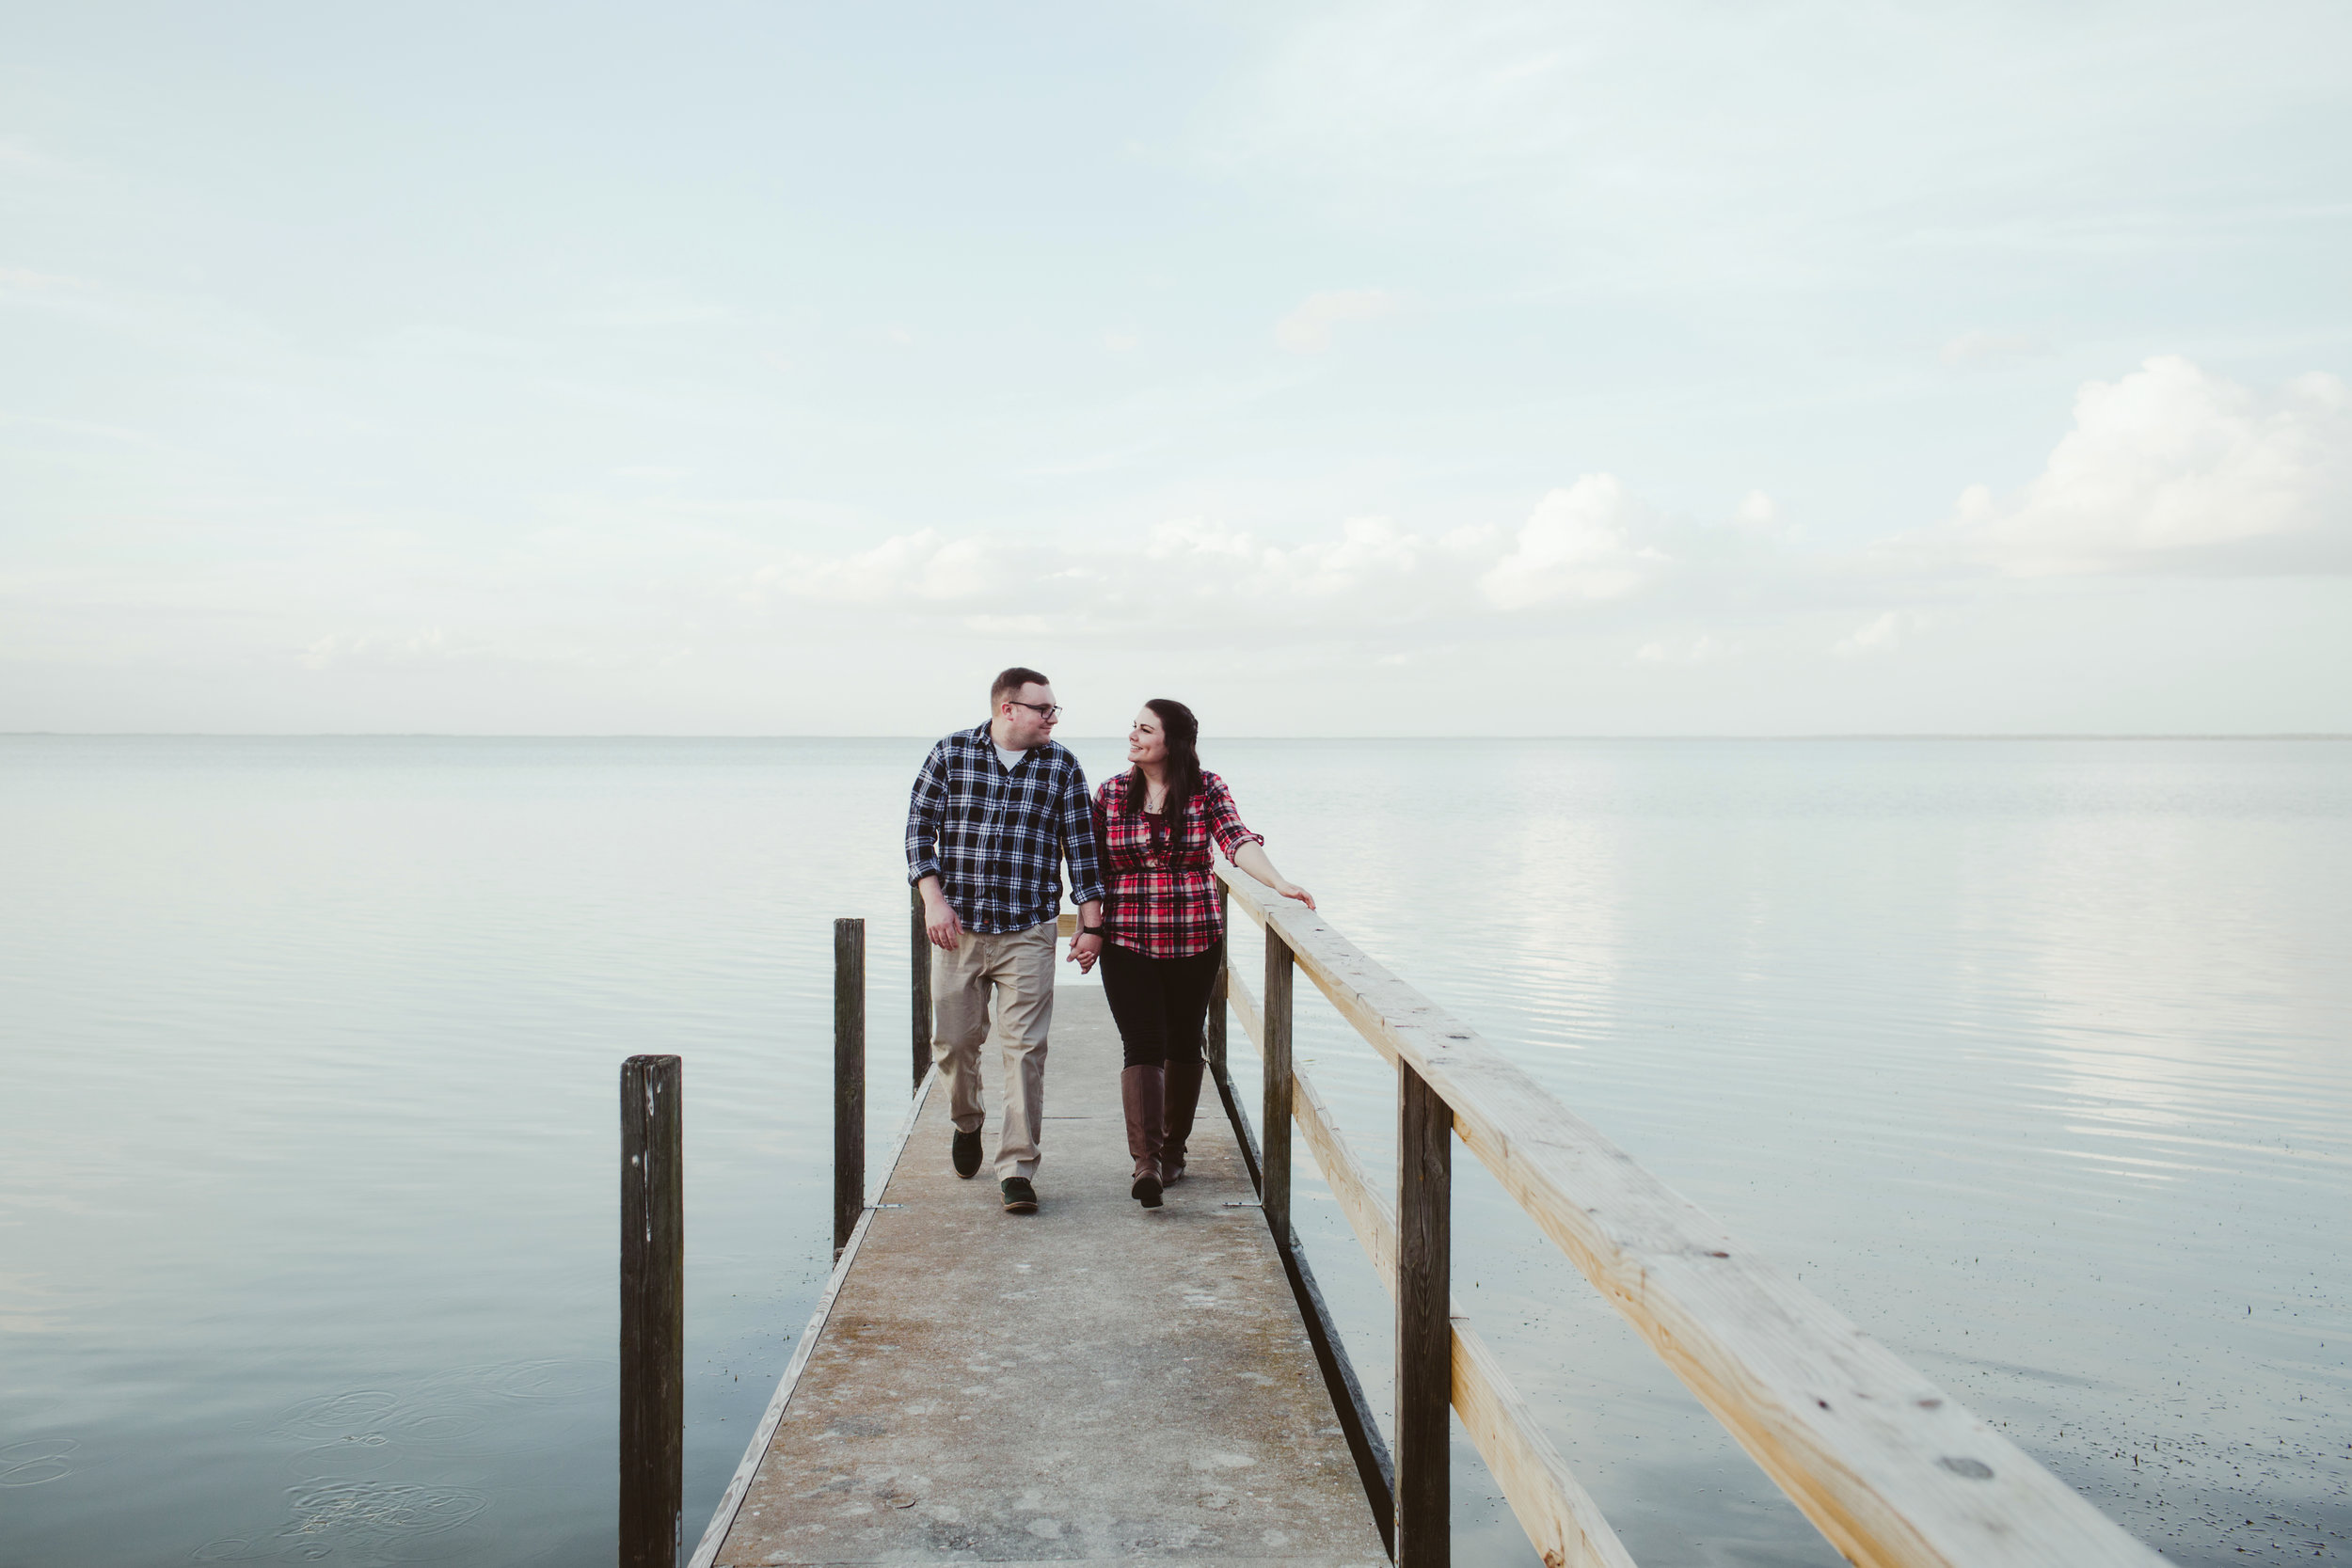 Engagement Session | Vanessa Boy |Vanessaboy.com | orlando,fl-182.com |final.jpg